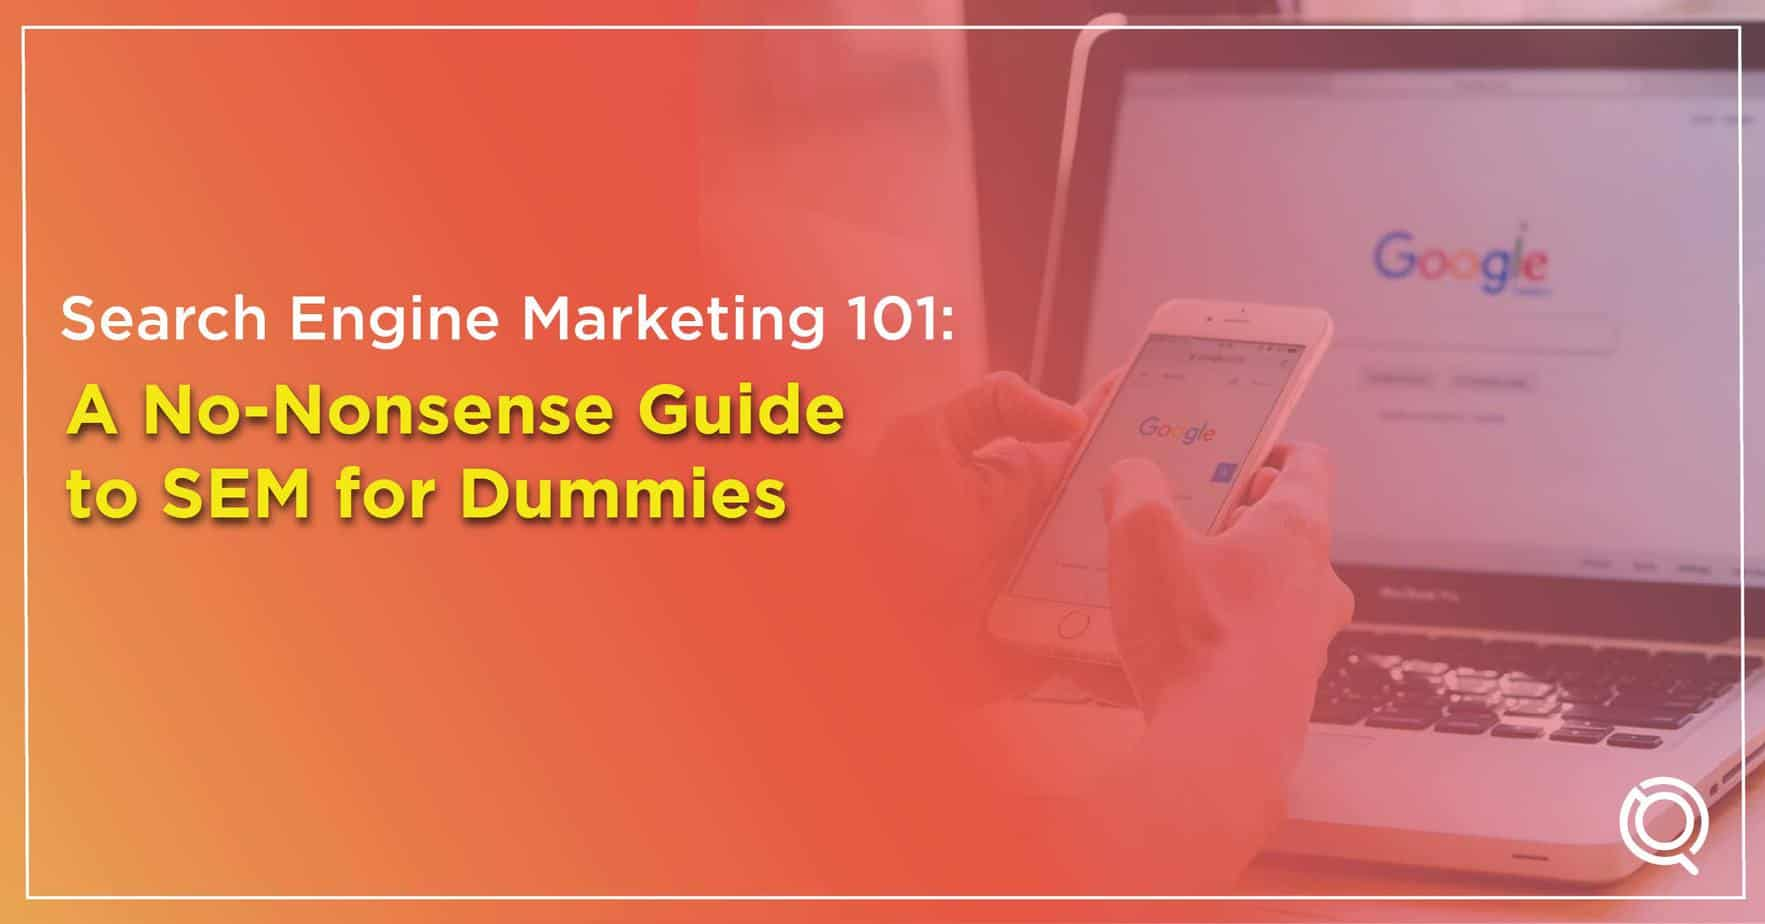 Search Engine Marketing 101: A No-Nonsense Guide to SEM for Dummies - One Search Pro Digital Marketing Agency Malaysia